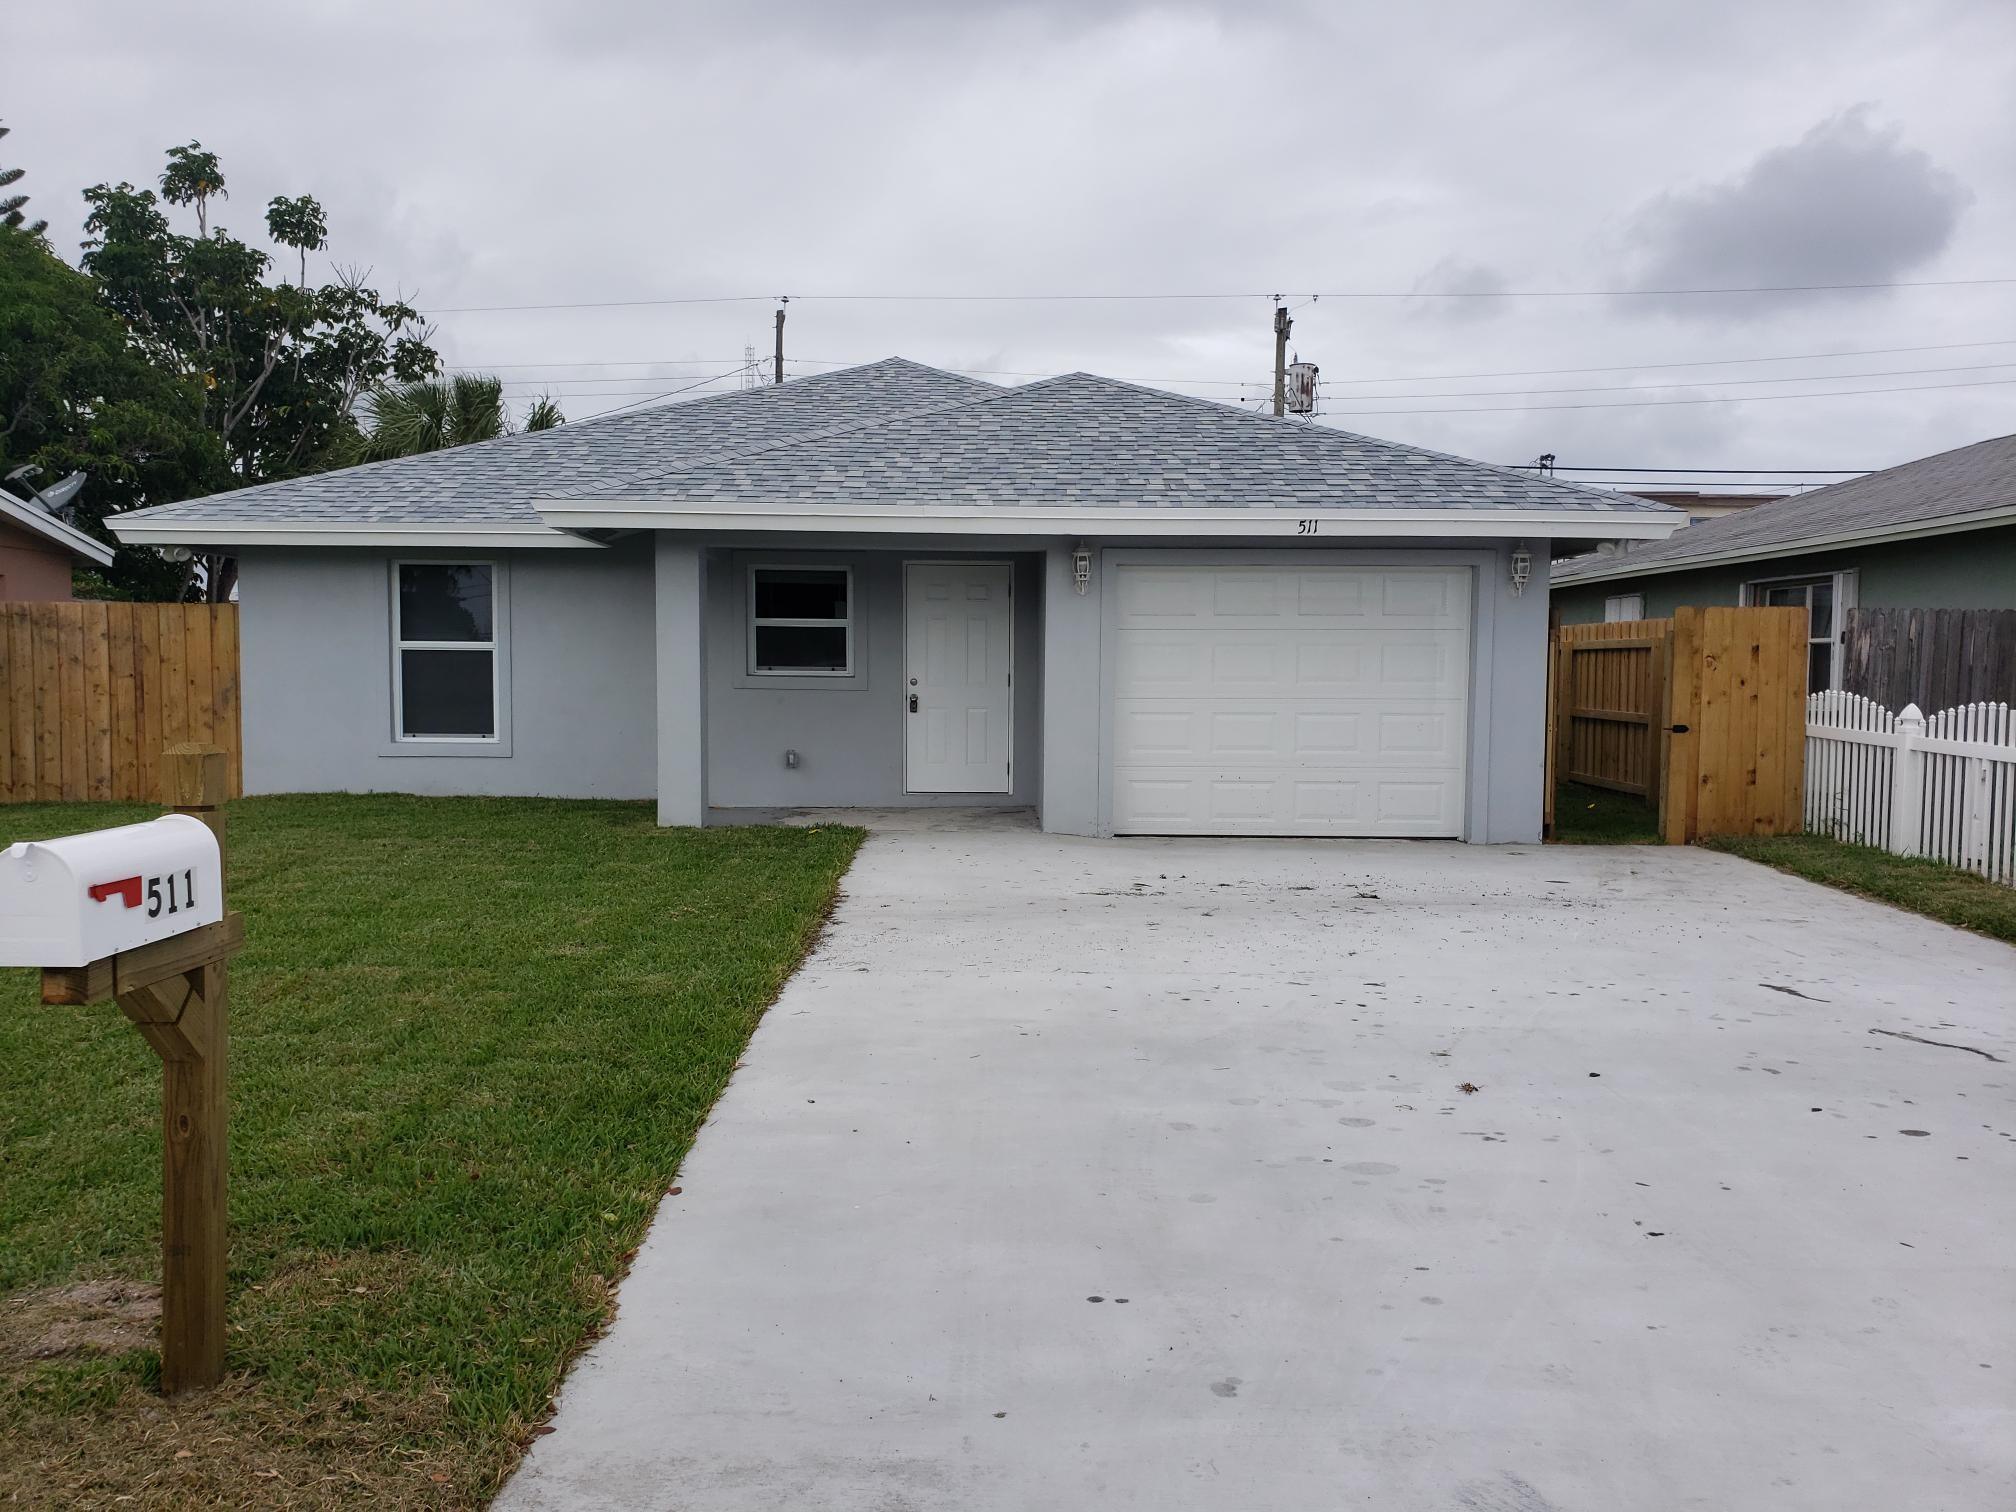 New 2019 construction 3 bedroom/ 2 bath home in the heart of Boynton Beach, FL with convenient access to I-95, shopping districts and waterfront. Features fenced rear yard, hurricane impact windows, impact exterior and garage doors, custom soft-close kitchen cabinetry with upgraded Quartz surface top, stainless appliances, simulated wood tile floor throughout home, recessed lighting in interior common areas, solar attic vent fan for energy efficiency, upgraded Quartz vanity tops and custom tile shower niches in both bathrooms, dimensional asphalt shingle roof, new 2.5 ton AC system, 150 Amp electric service panel and auto irrigation sprinkler system. Ask about our WARRANTY.